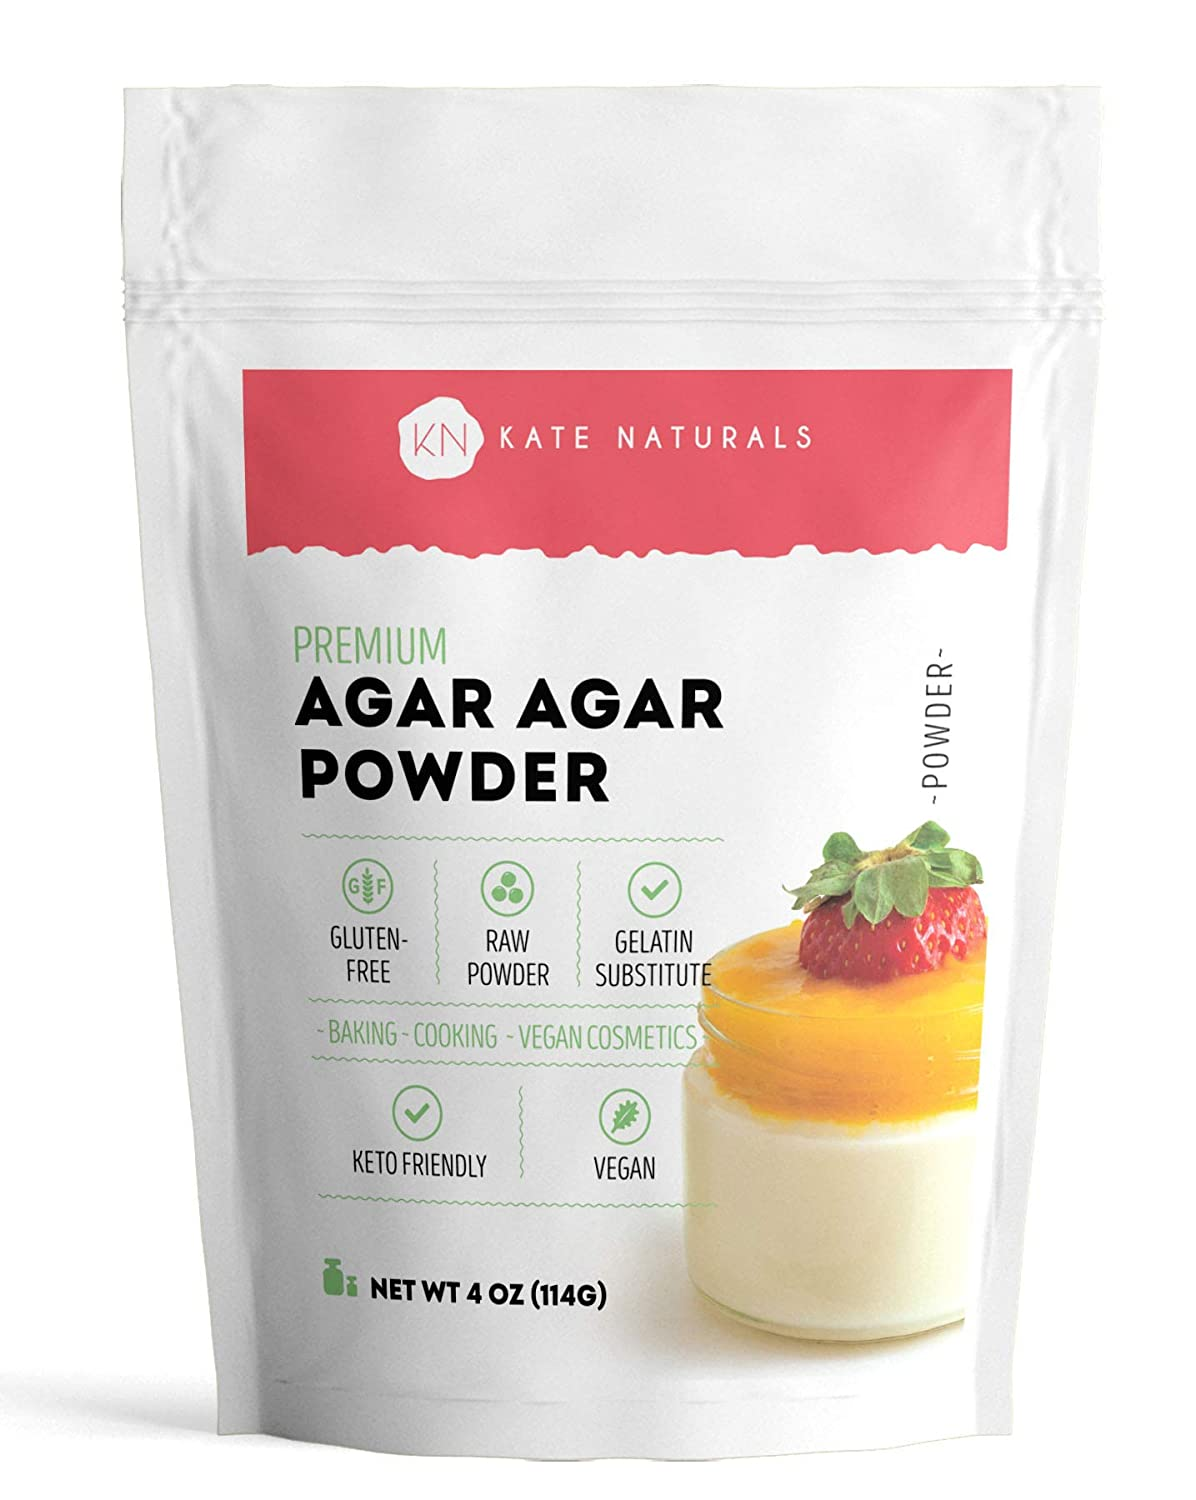 Agar Powder 4oz Don't miss the campaign for Vegans and Kate by Outlet sale feature Naturals. V Baking